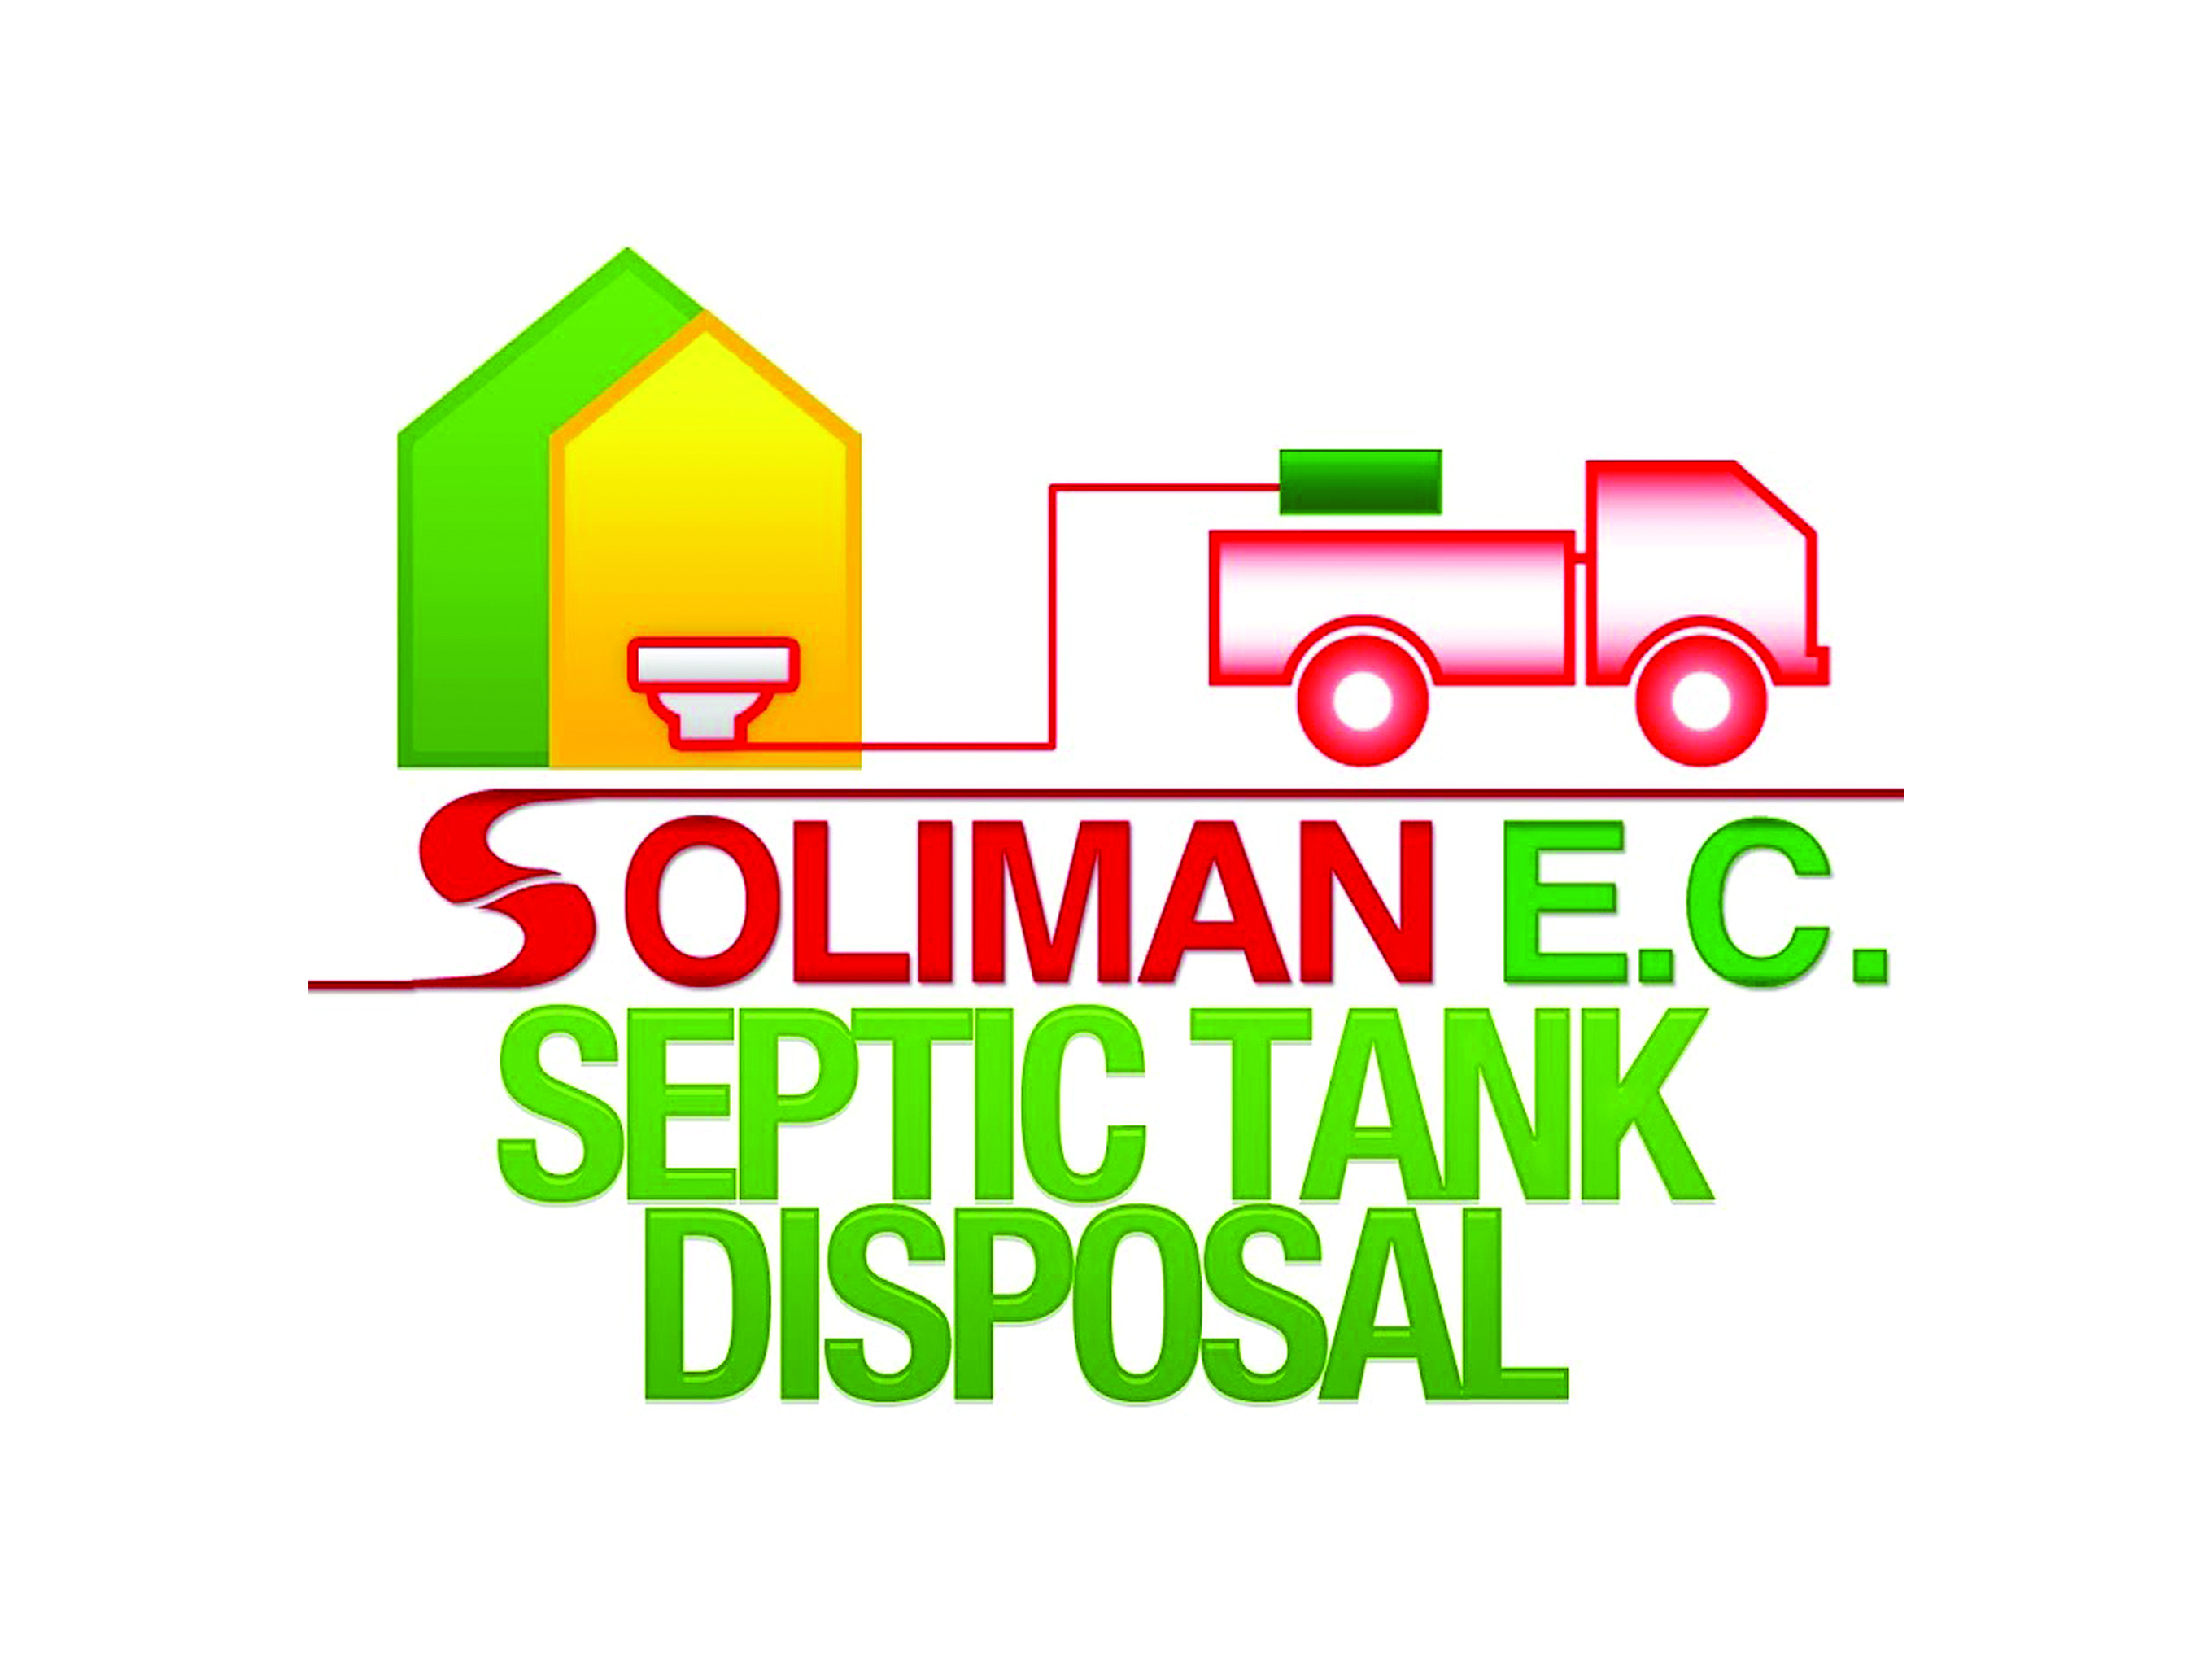 09. SOLIMAN E.C. SEPTIC TANK DISPOSAL